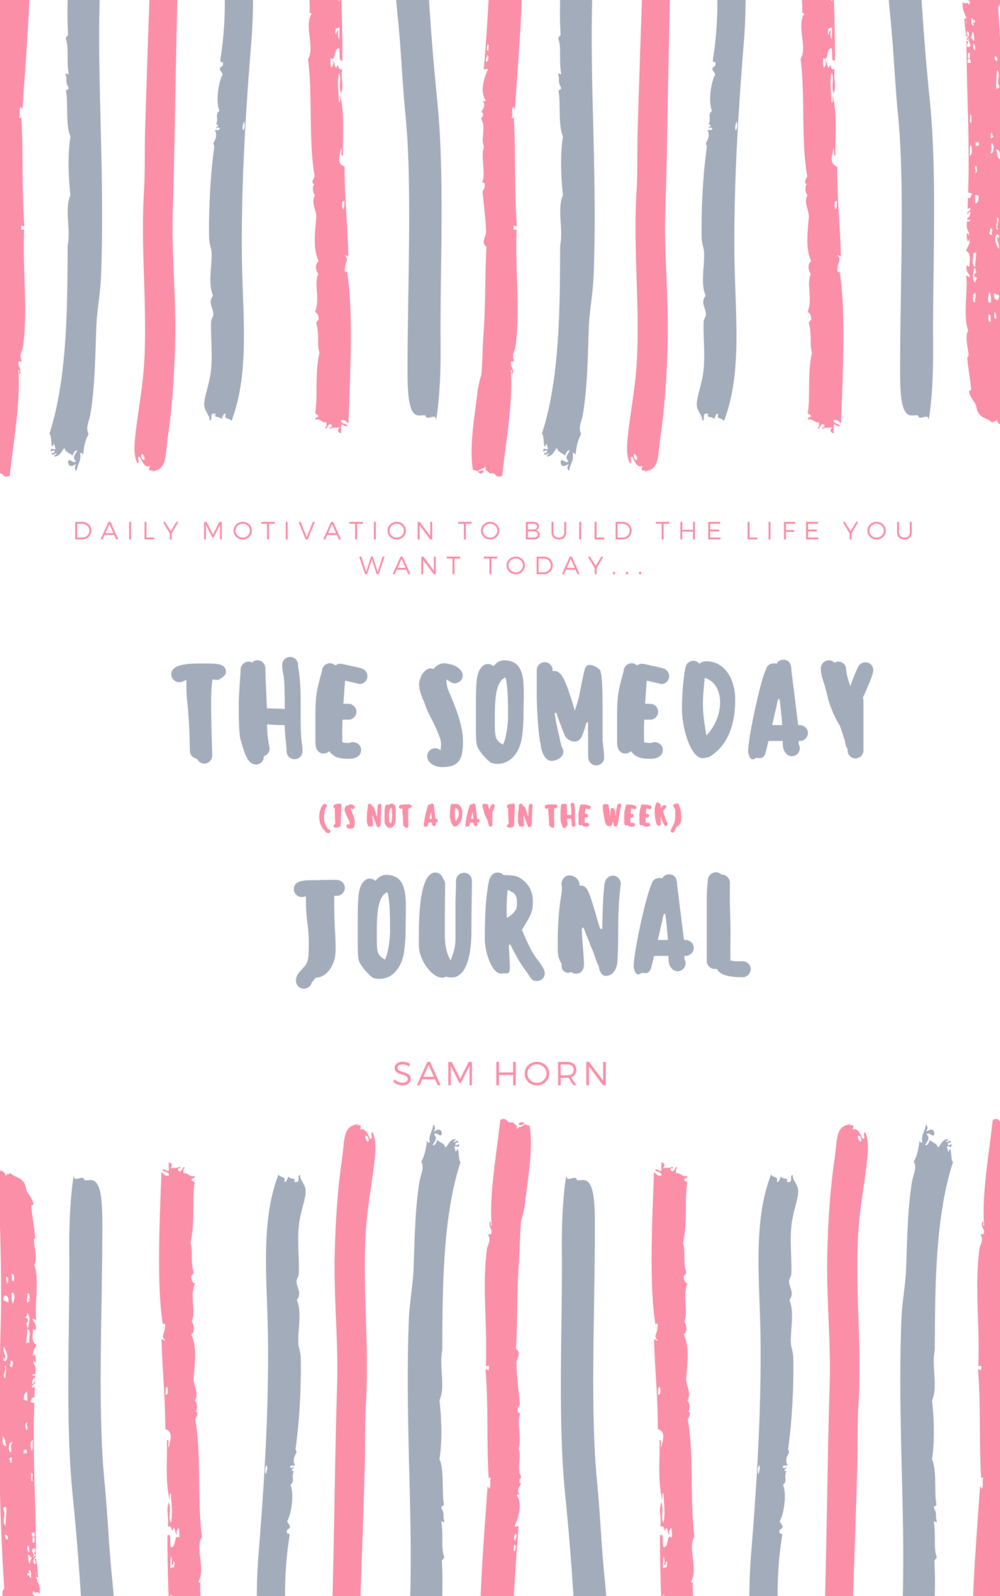 The Someday Journal - Daily motivation to build the life you want today.